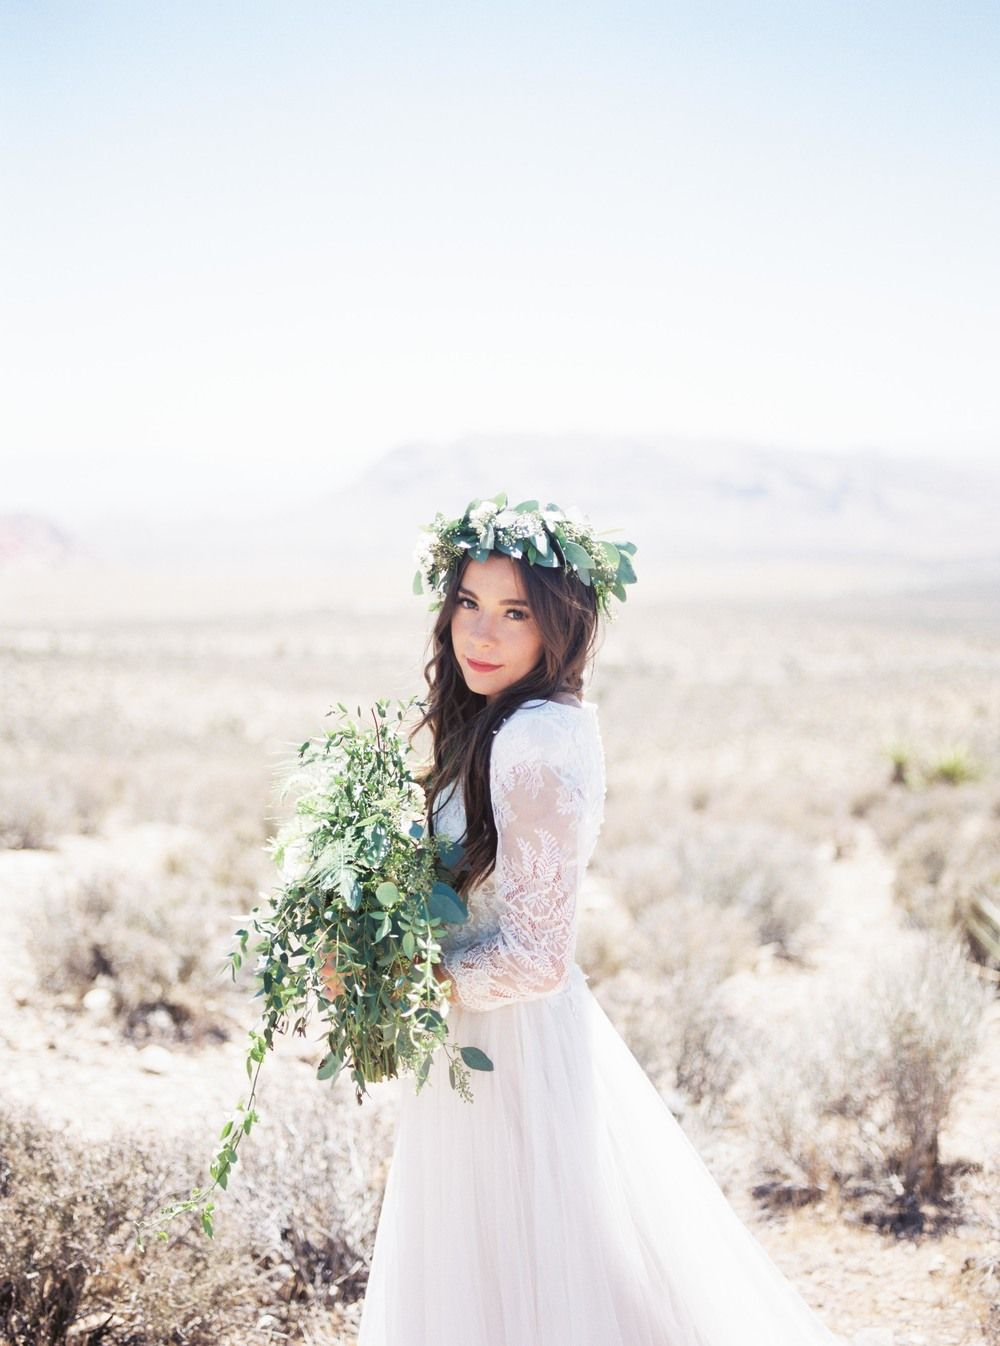 Wedding | Las Vegas, Nevada | Kychelle Photo | Michelle White Photo ...